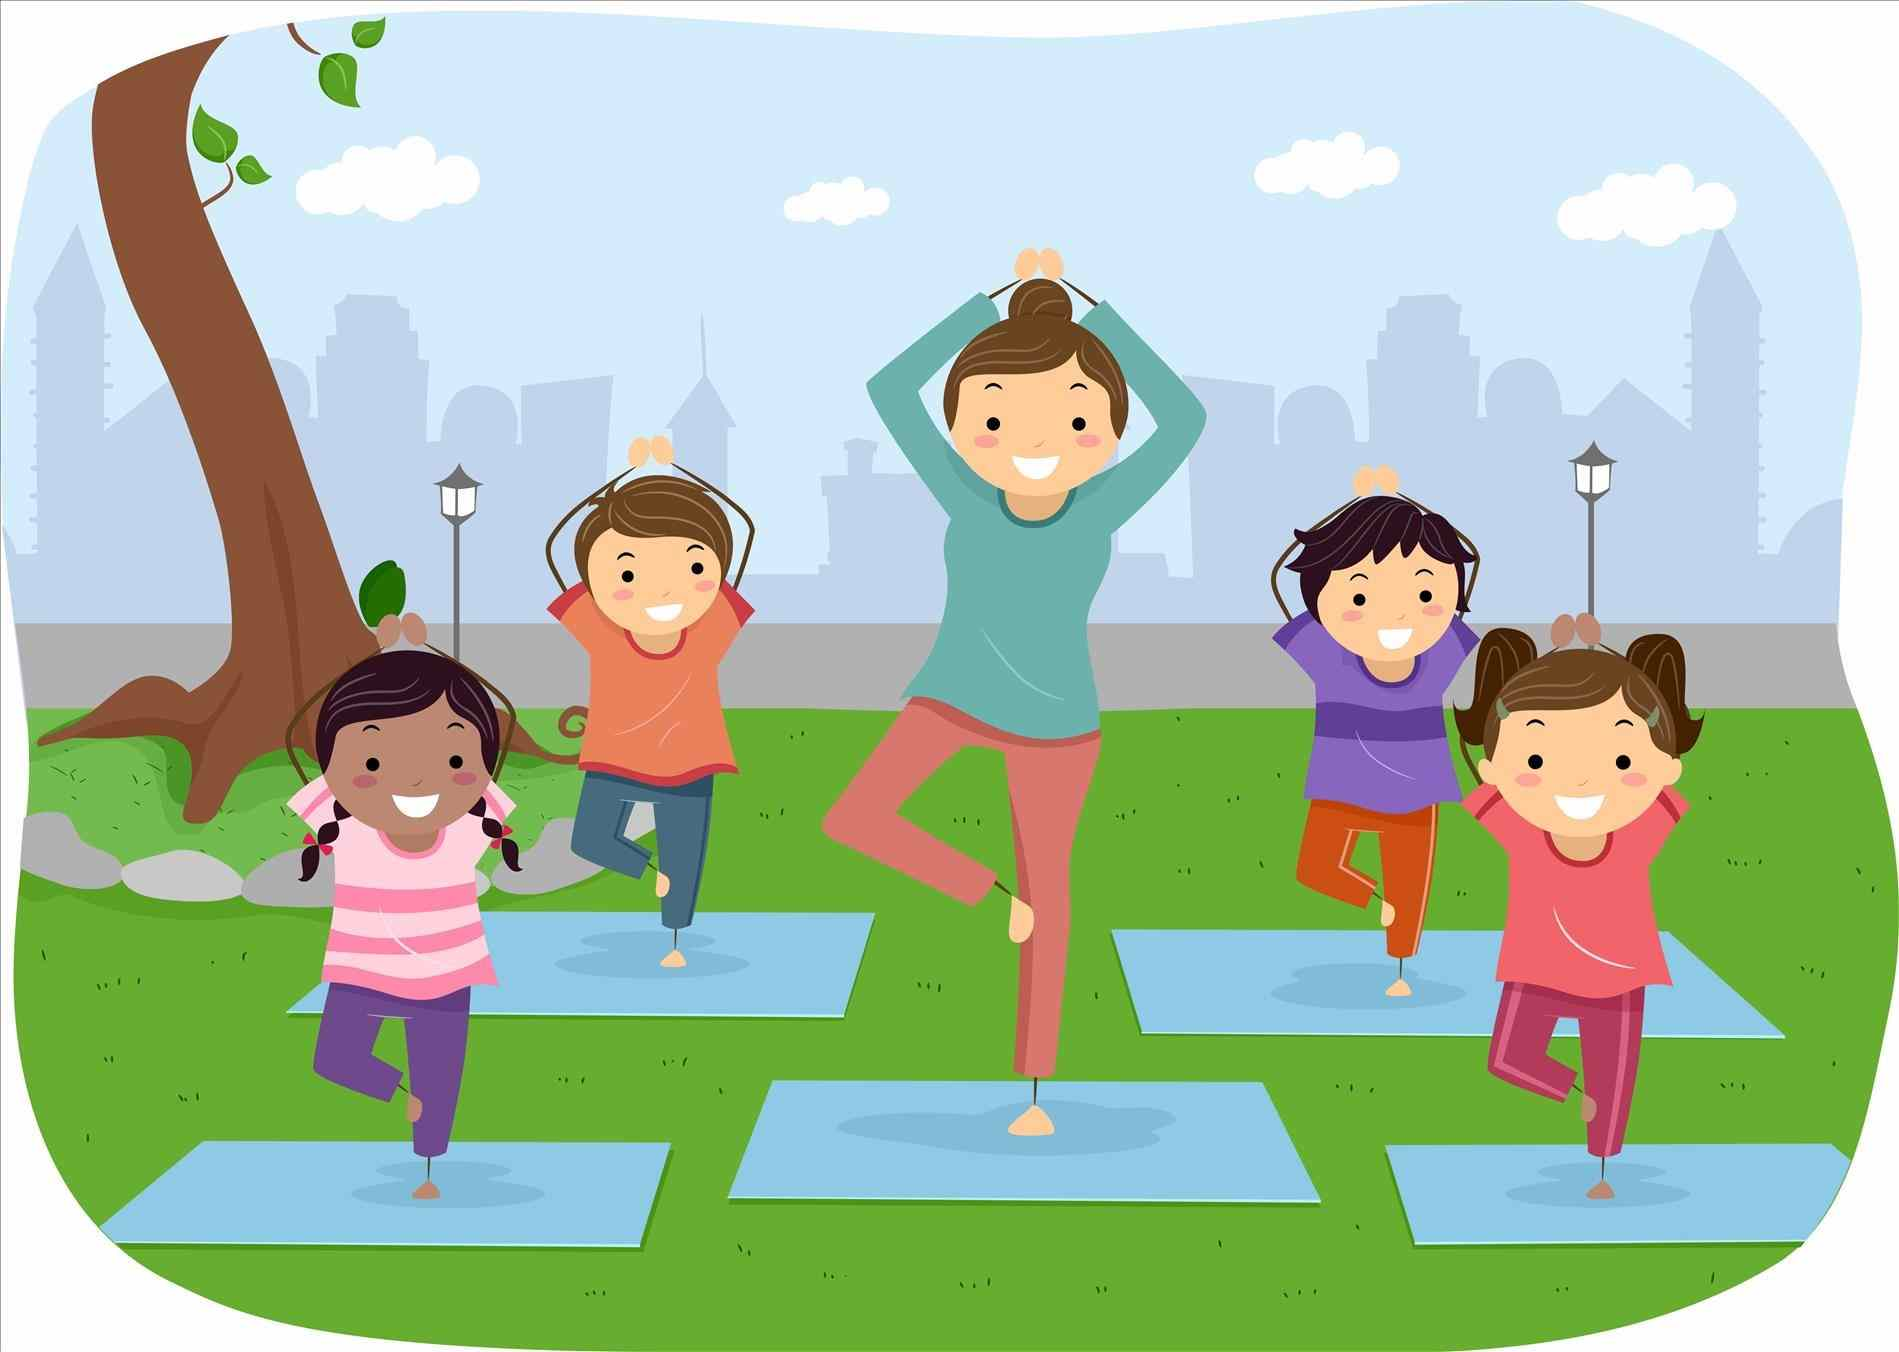 Visit family outdoor games clipart nh calendarpany picnic.